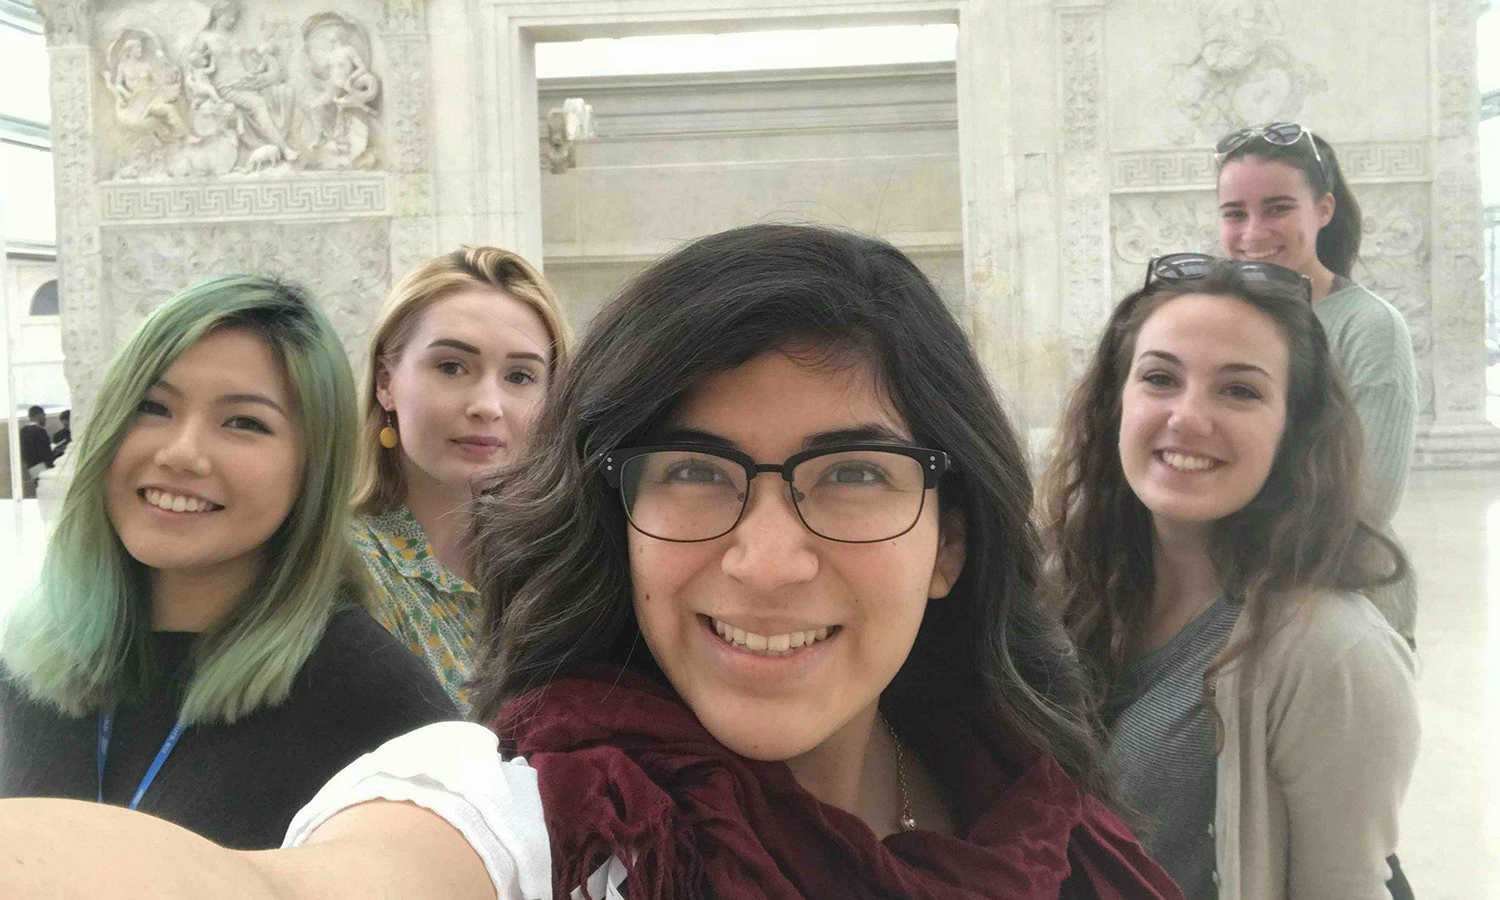 Claire Ching âX, Kristine Vann â19, Leslie Colunga âX, Yellie LaBarre âX and Jamie Soucie âX snap a photo while studying abroad in Rome, Italy.